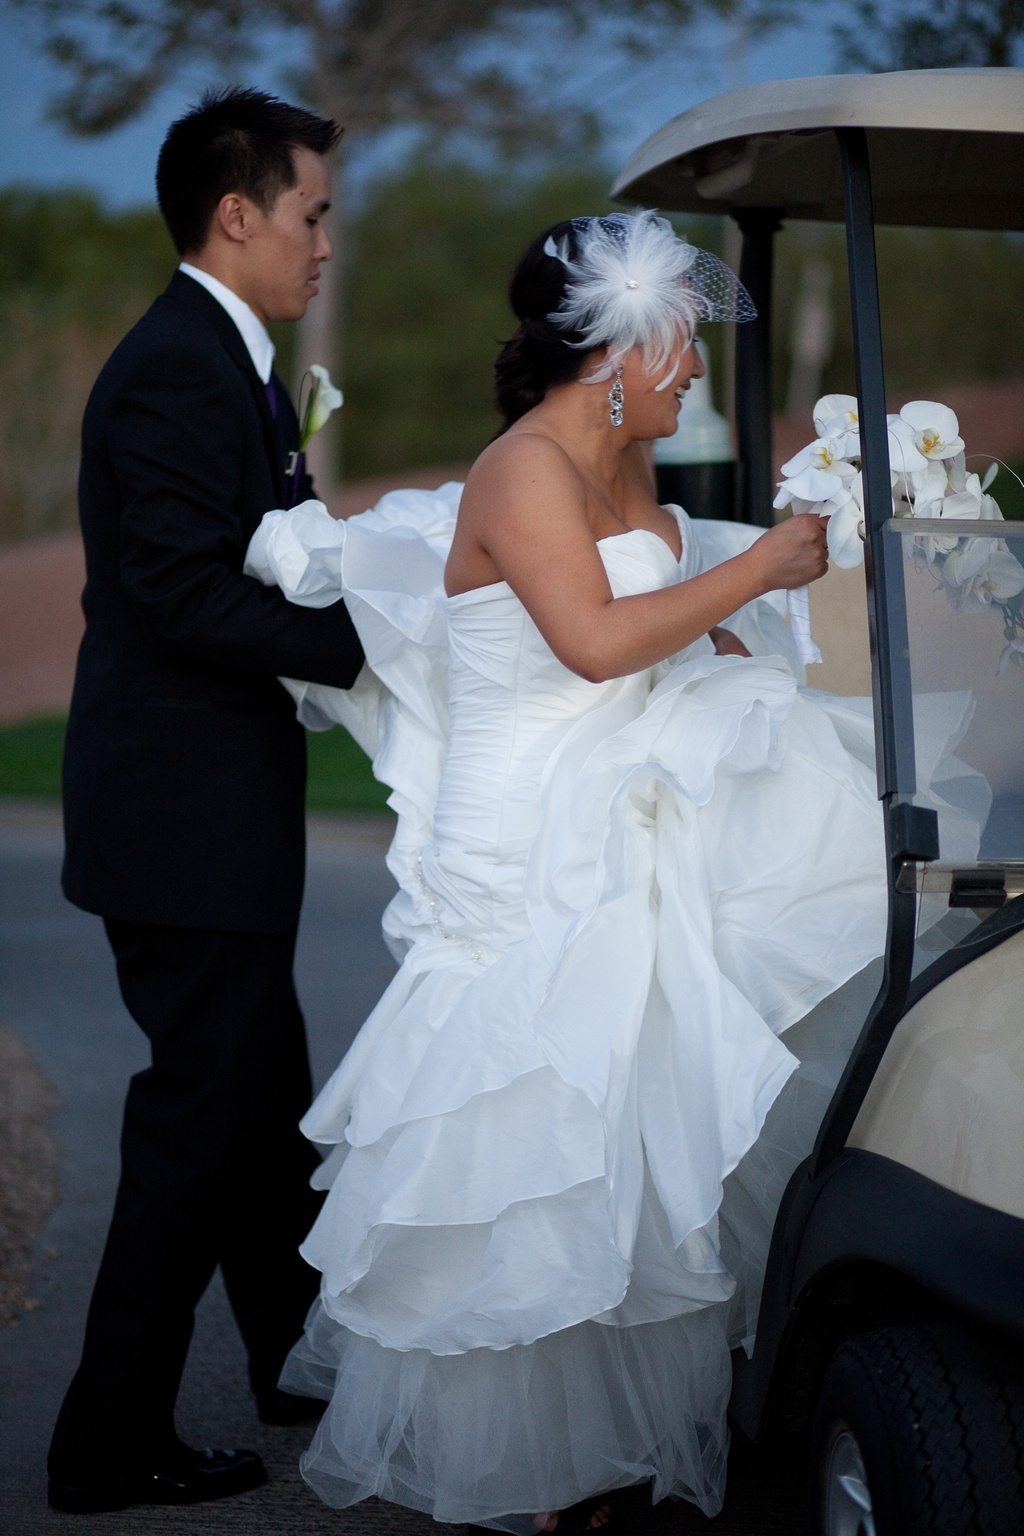 Las-vegas-bride-leaves-wedding-reception-with-groom.full